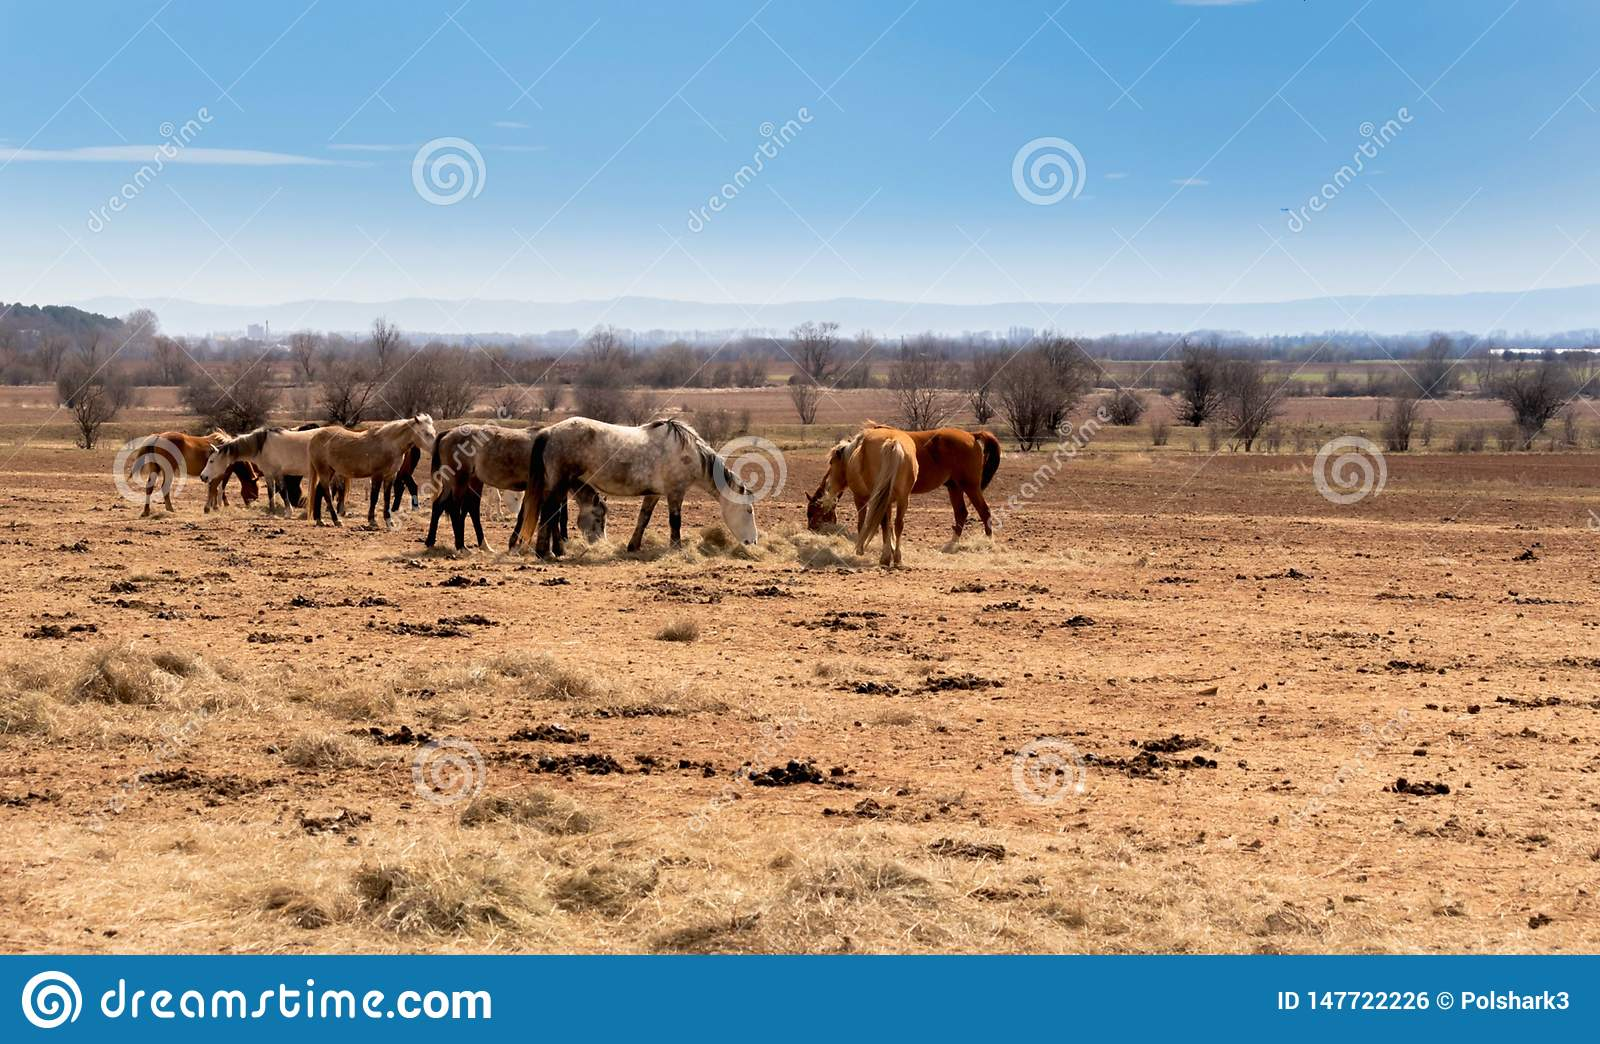 beautiful landscape, the herd of horses grazing in the field